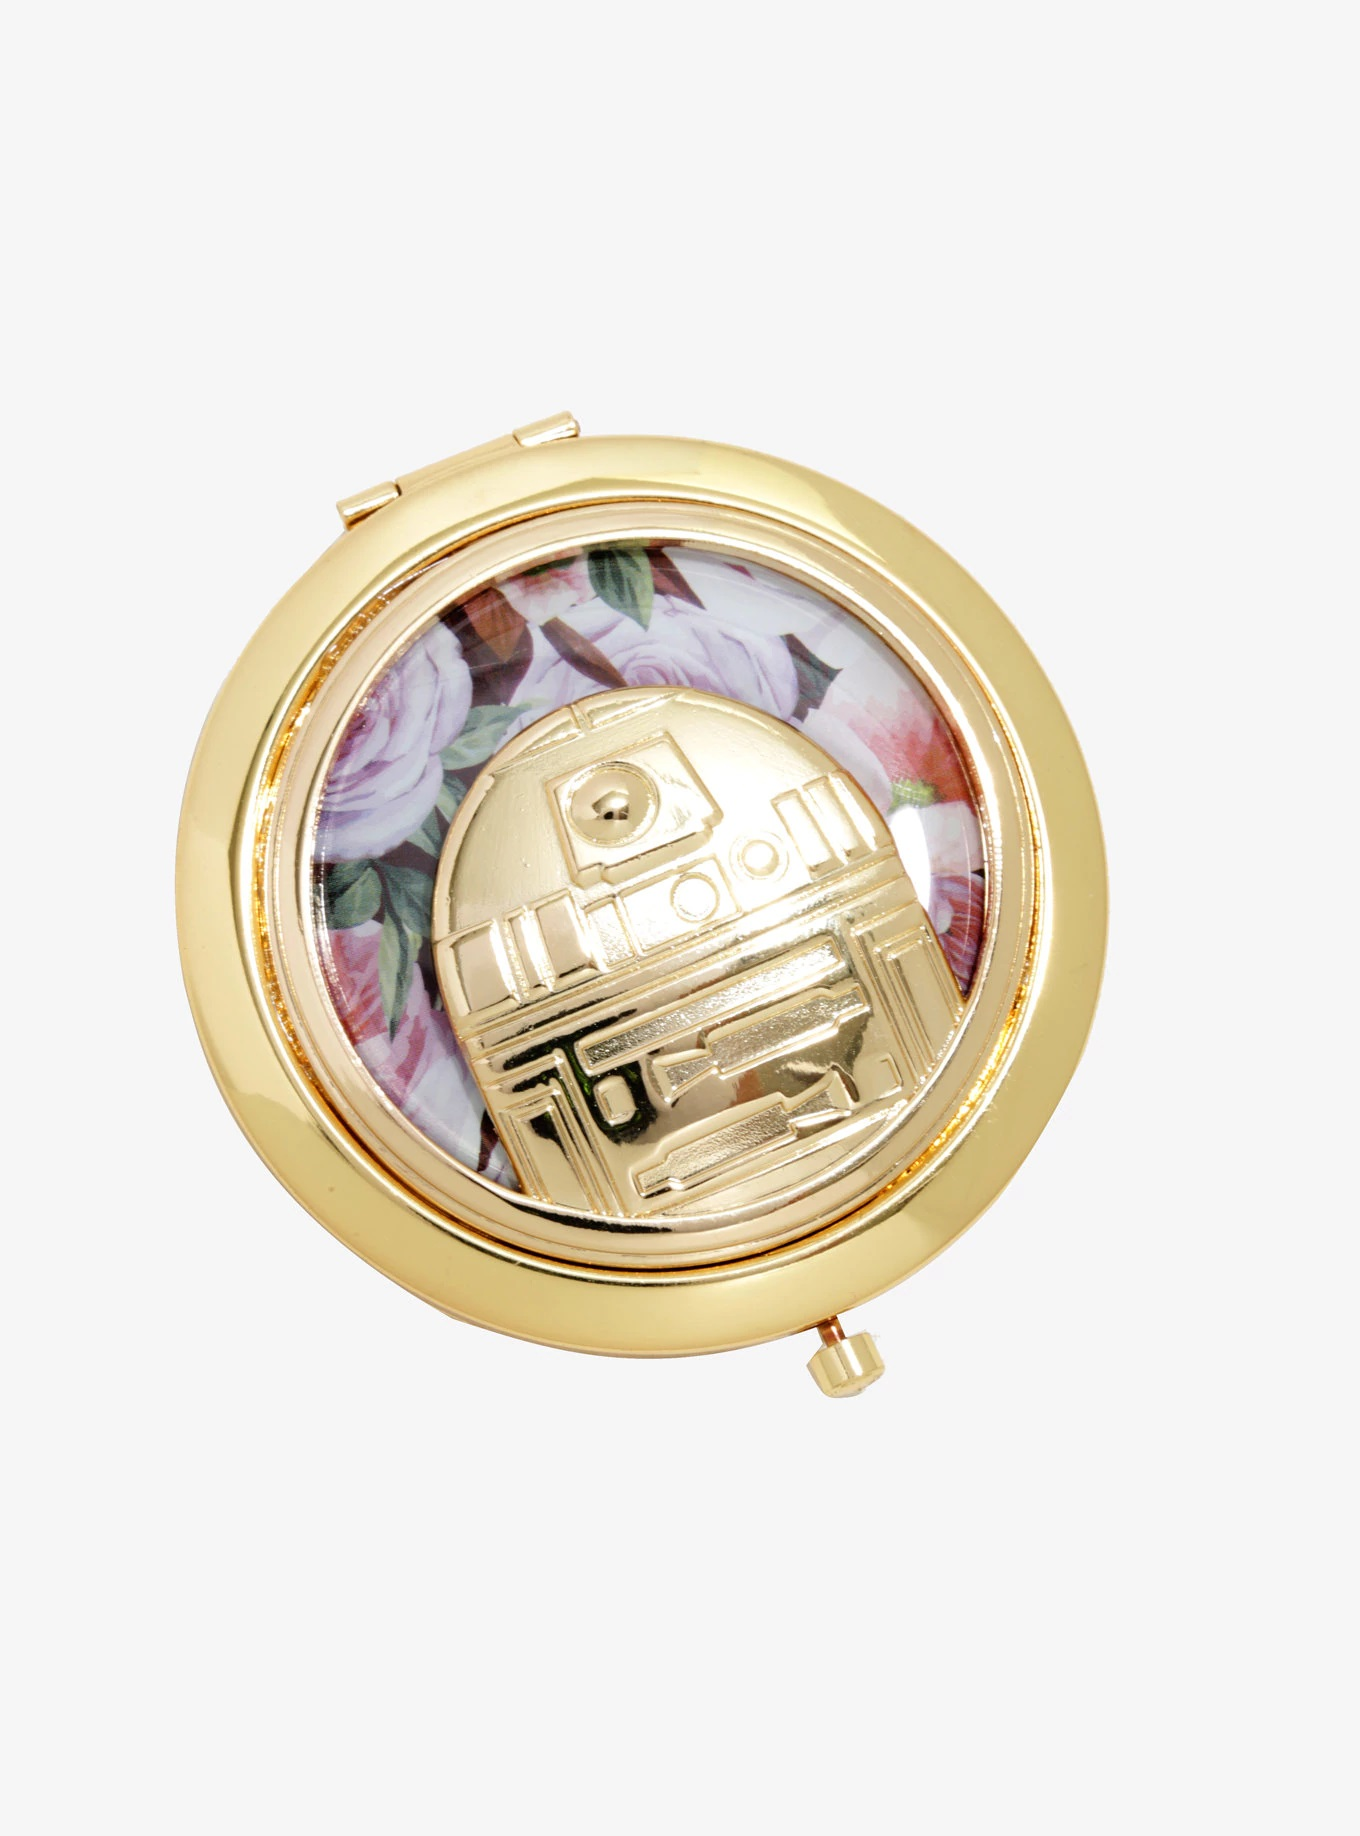 Loungefly x Star Wars R2-D2 Floral Compact Mirror at Box Lunch